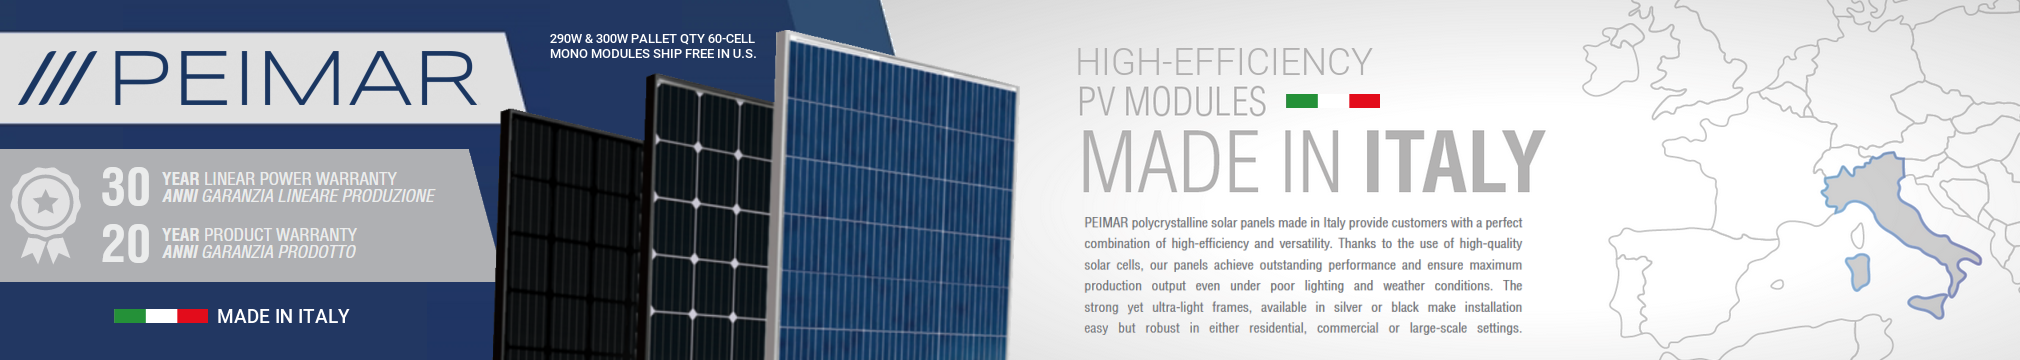 Peimar solar modules, tarrif-free and made in Italy, provide exceptional efficiency and rugged construction for your photovoltaic needs.